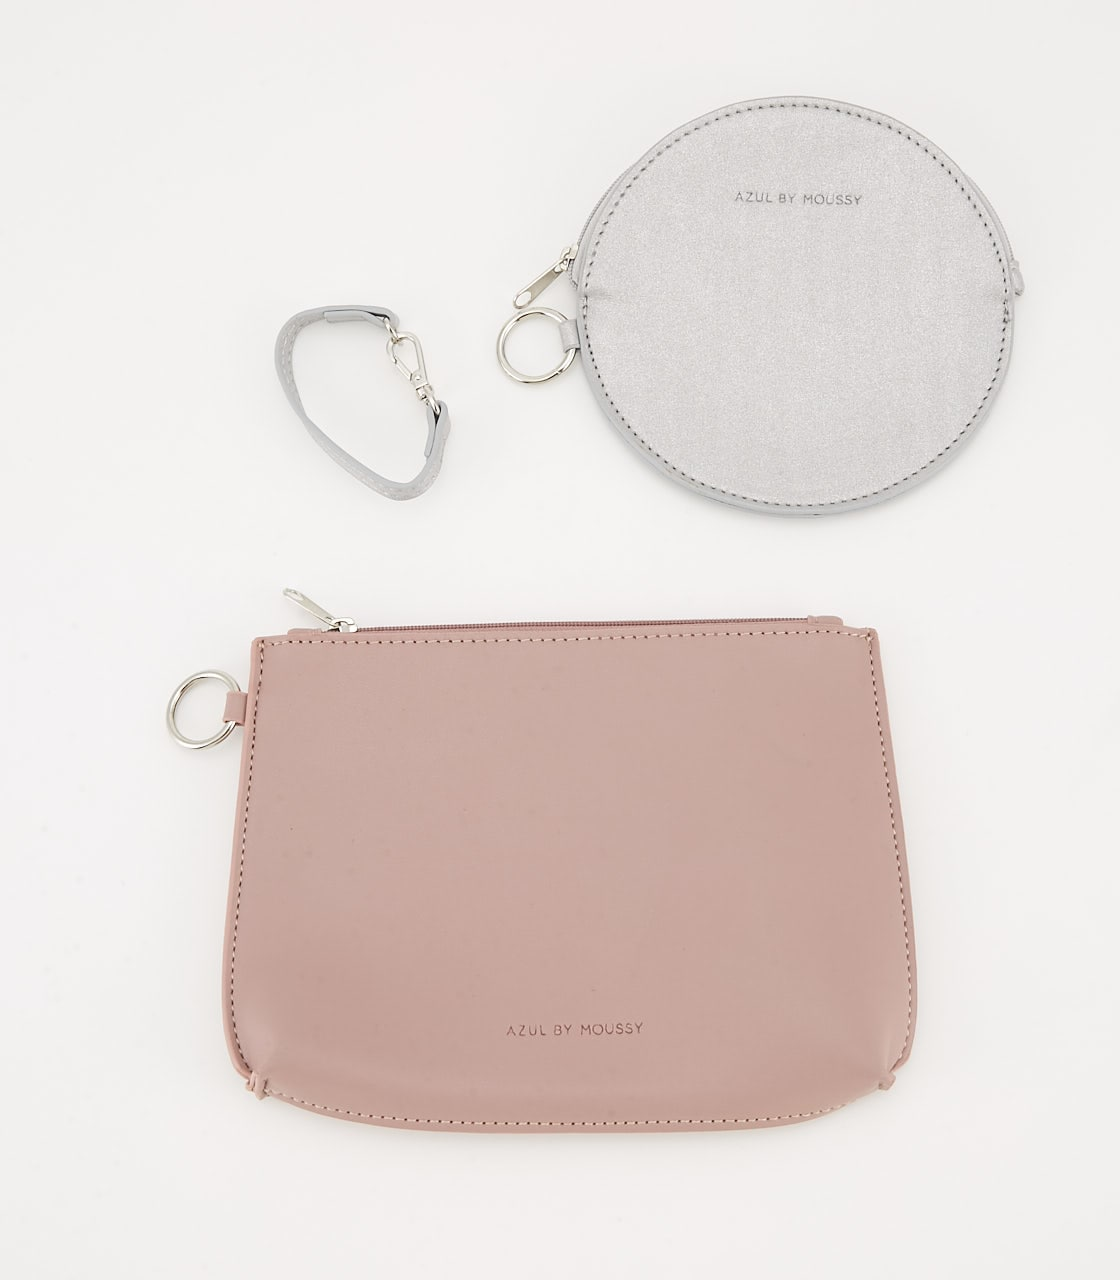 【AZUL BY MOUSSY】POUCH SET TOTEBAG 詳細画像 CAM 6